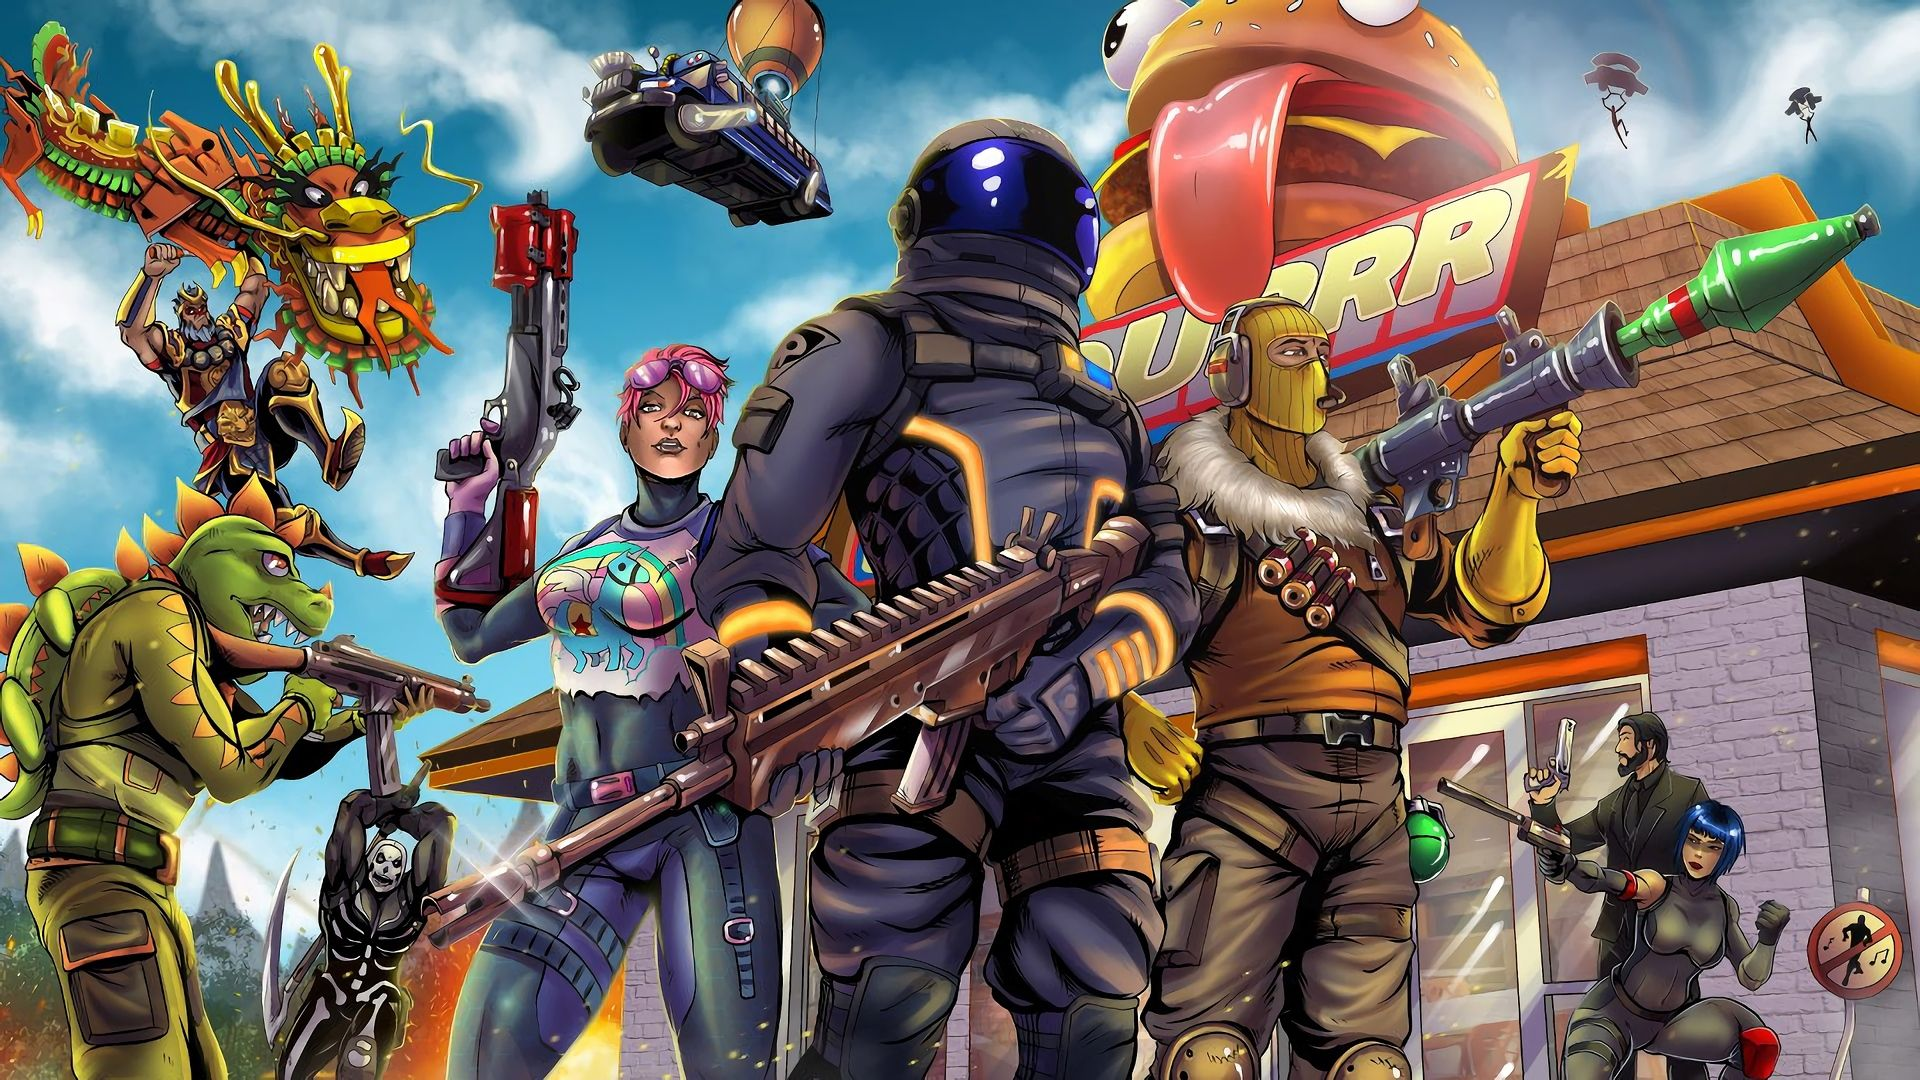 1920x1080 Hd Wallpaper Of Fortnite Battle Royale Video Game